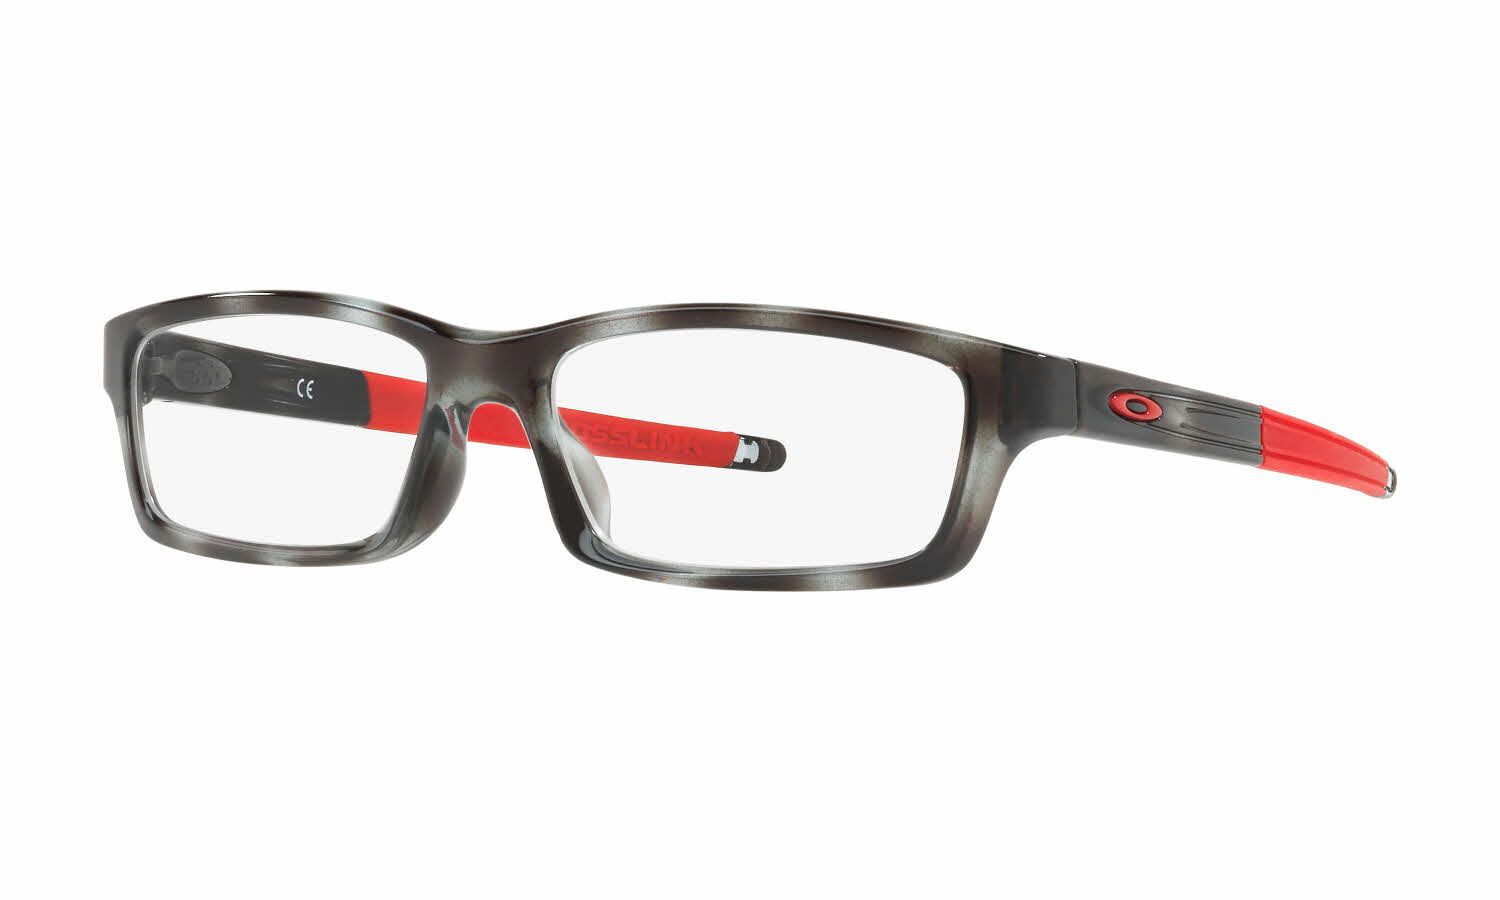 Oakley Alternate Fit Crosslink Youth - Alternate Fit Eyeglasses